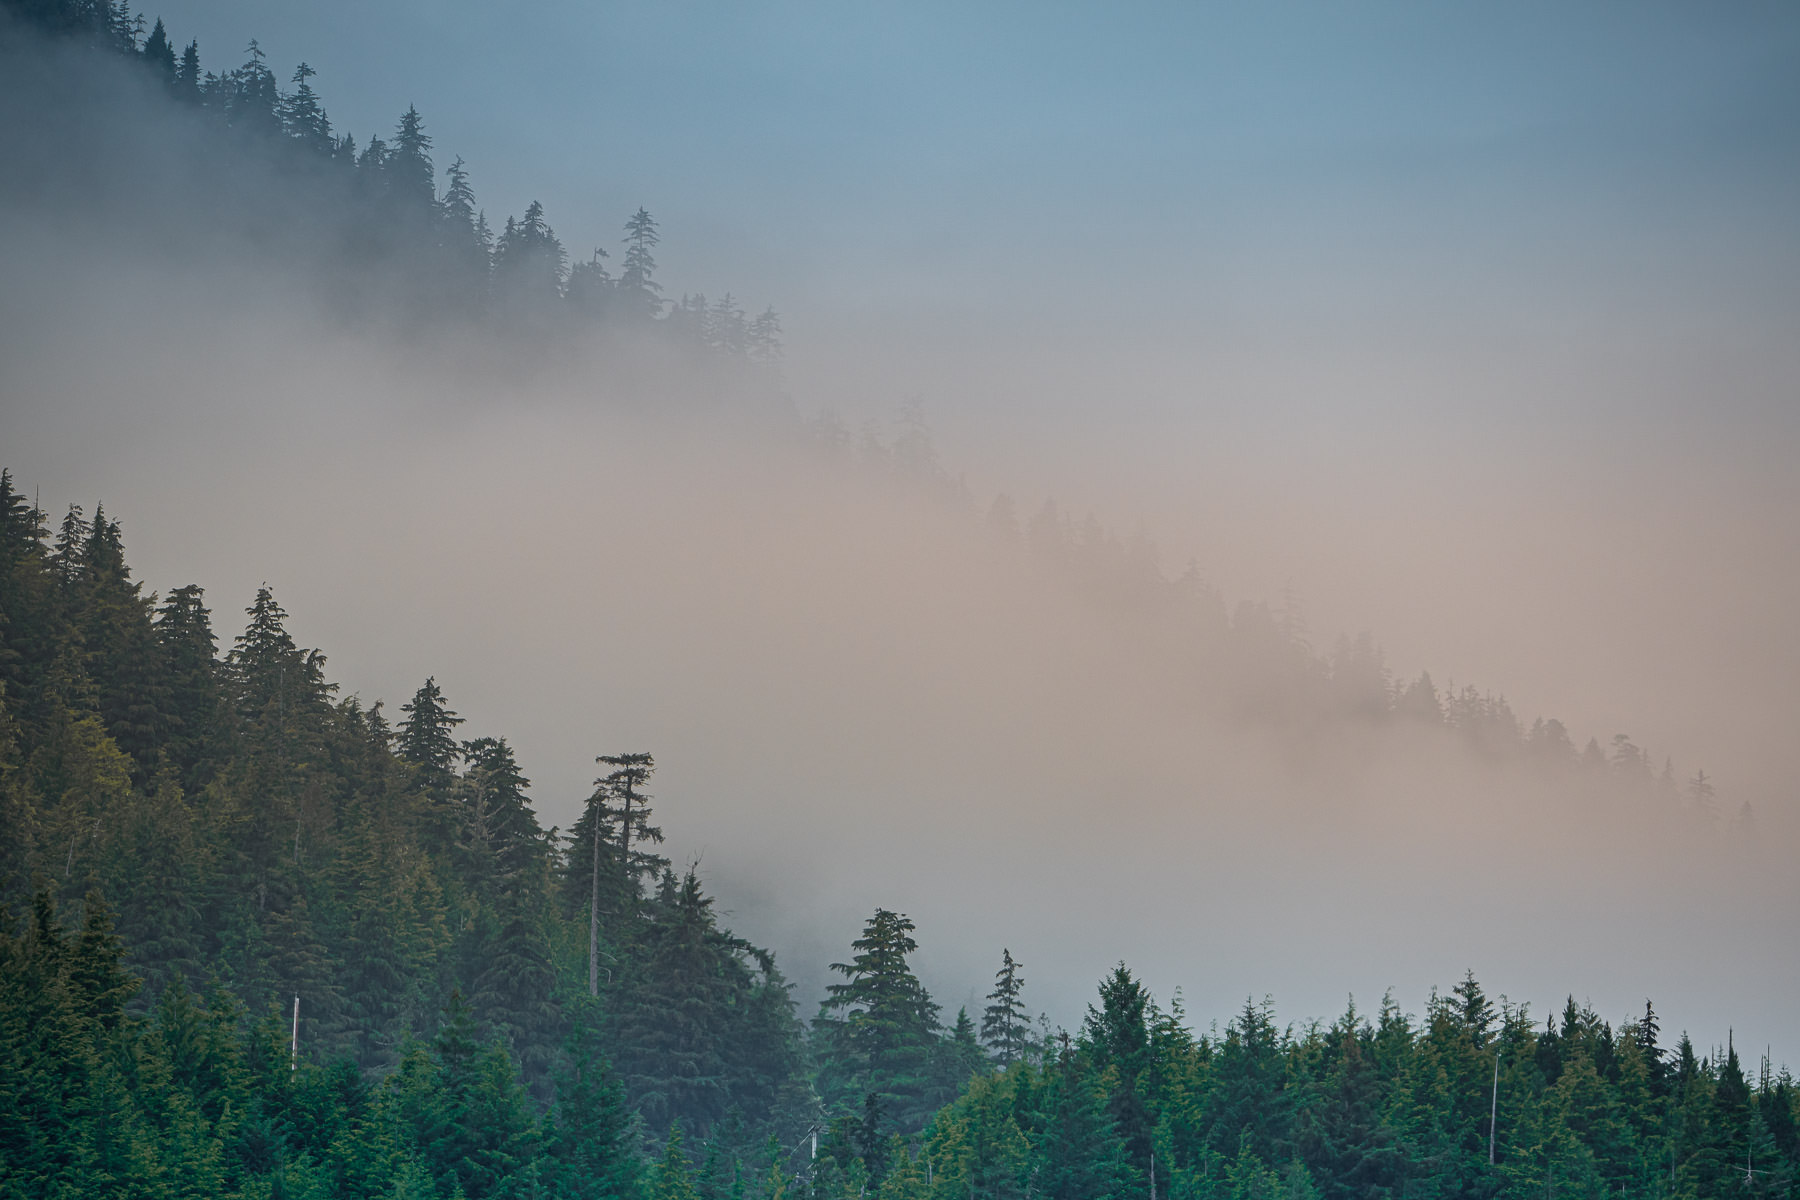 Early-morning fog among mountainside trees in Ketchikan, Alaska.